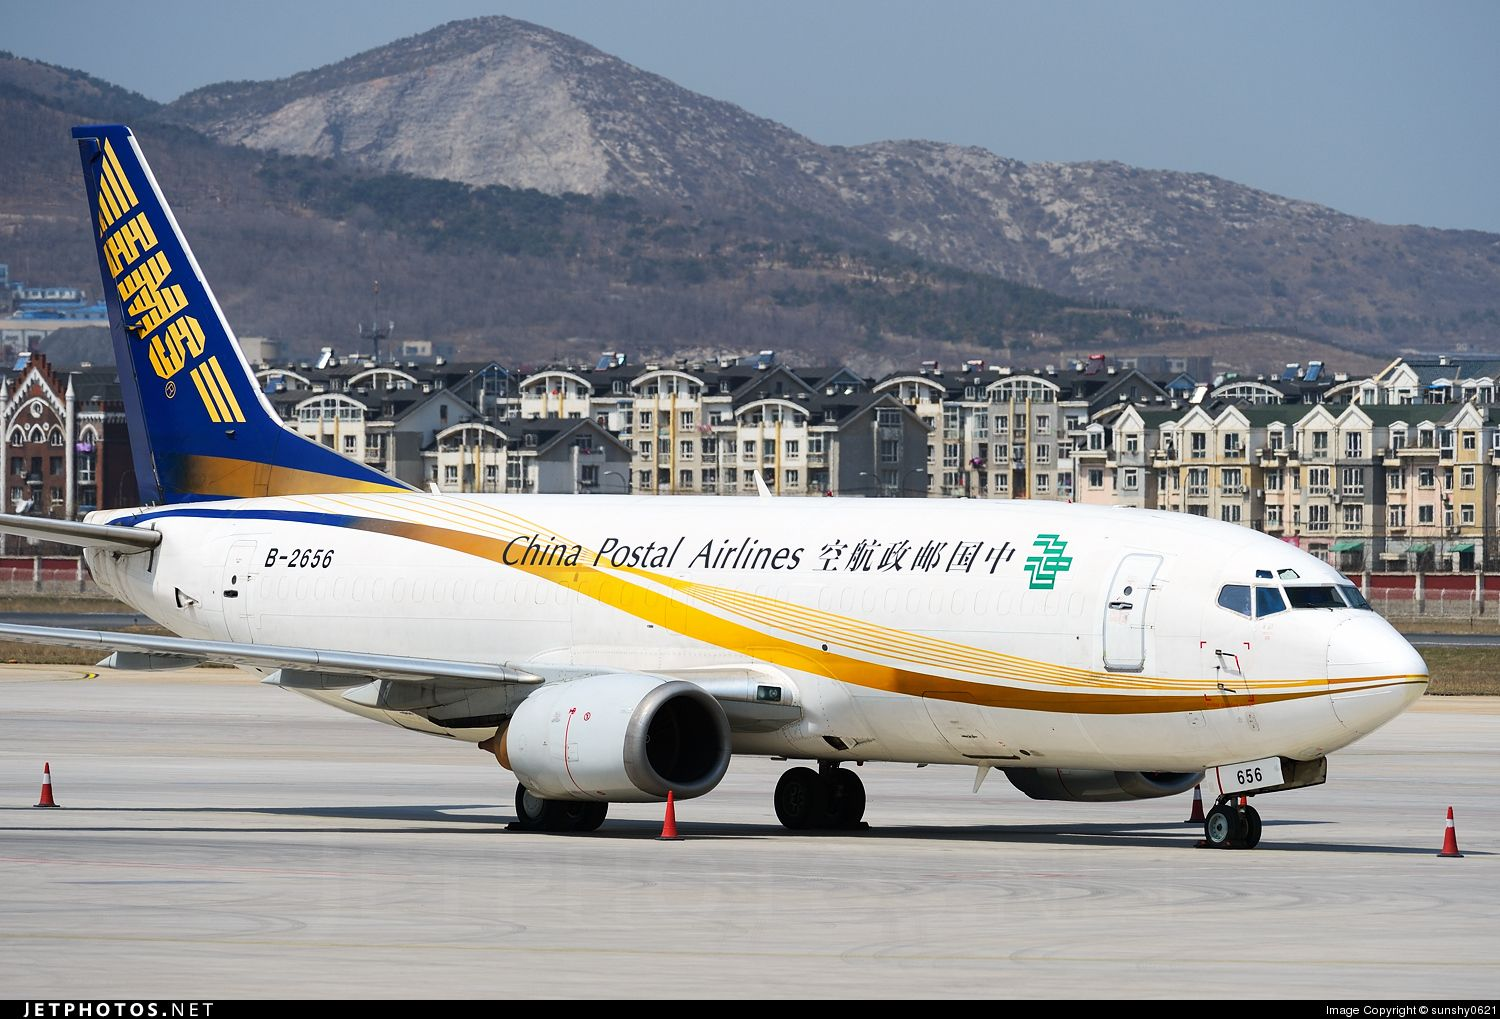 Airline China Postal Airlines Registration B2656